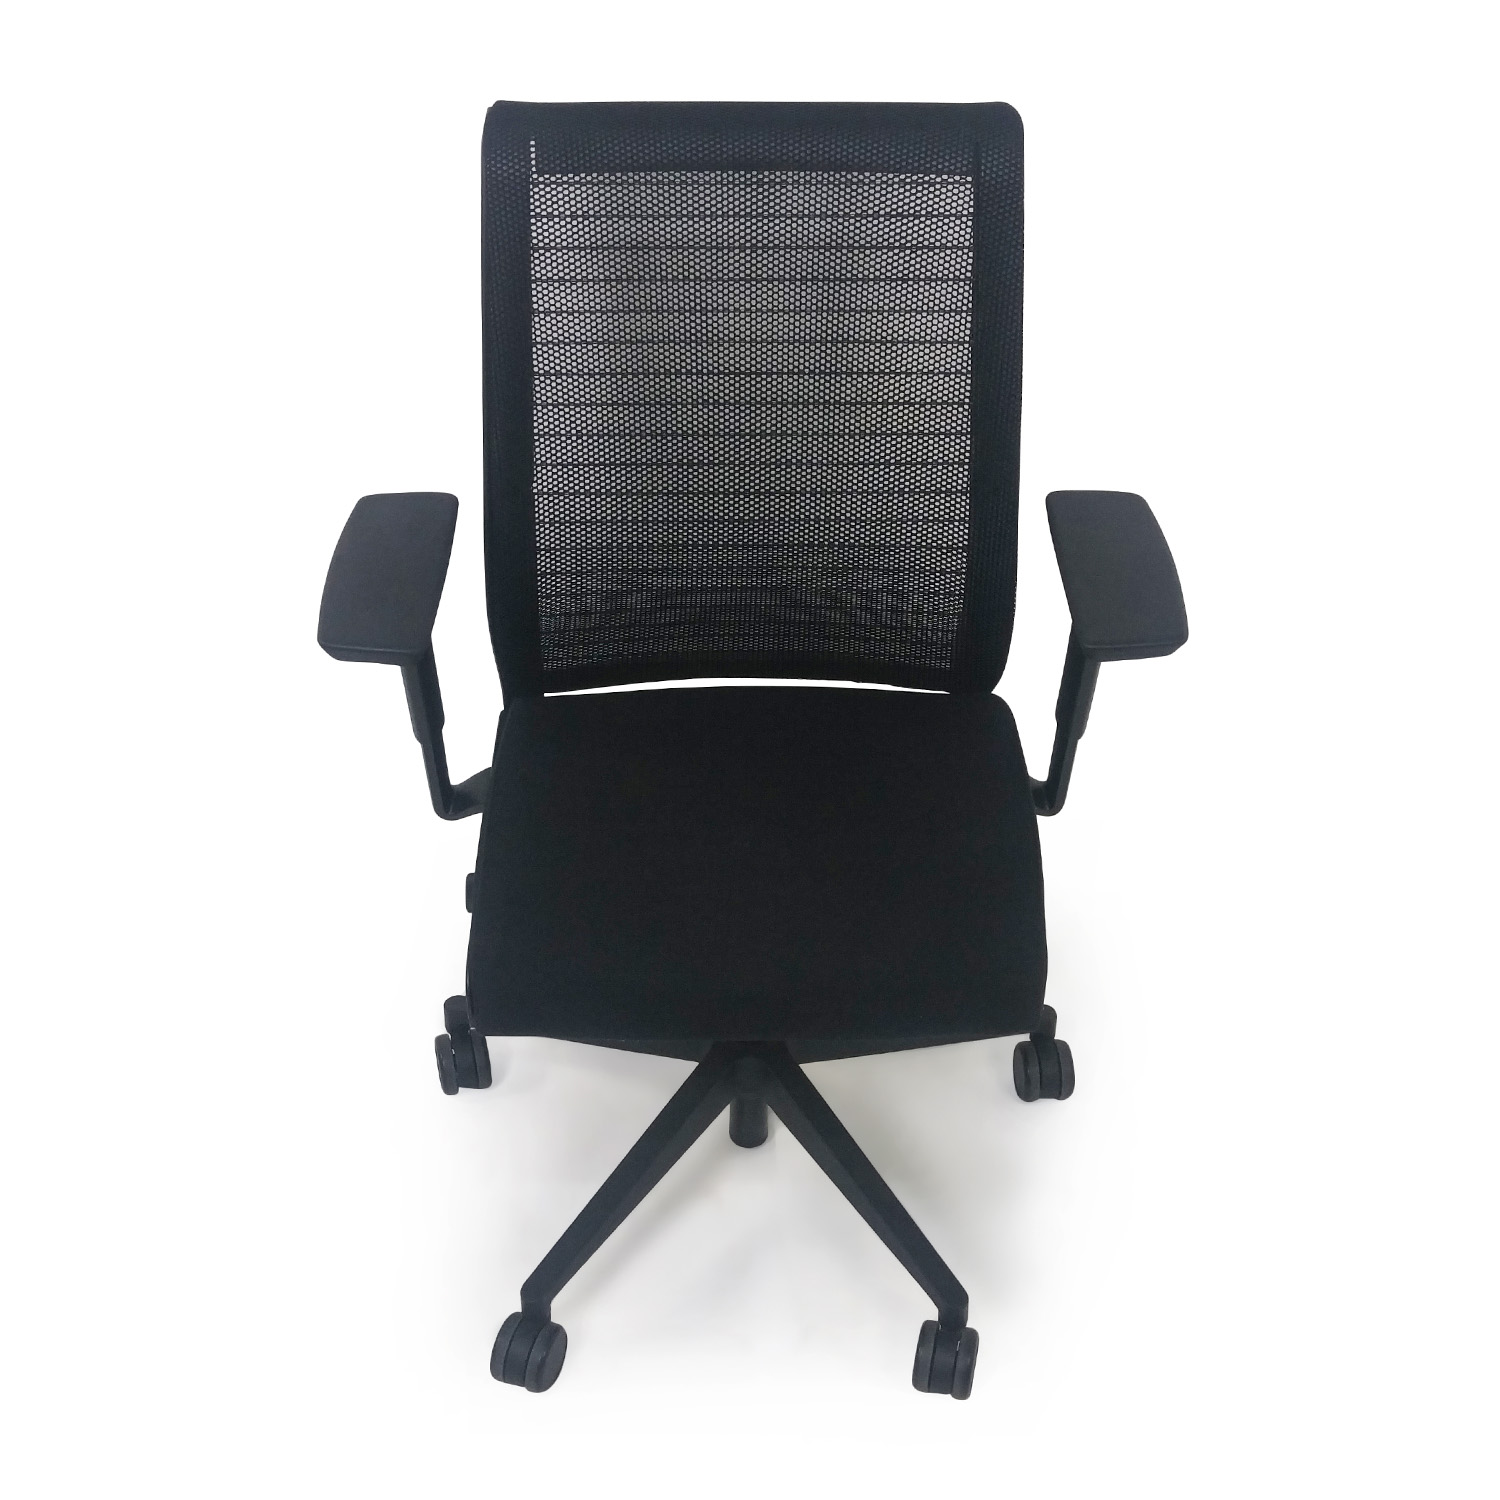 Steelcase Steelcase Modern Swivel Chair second hand